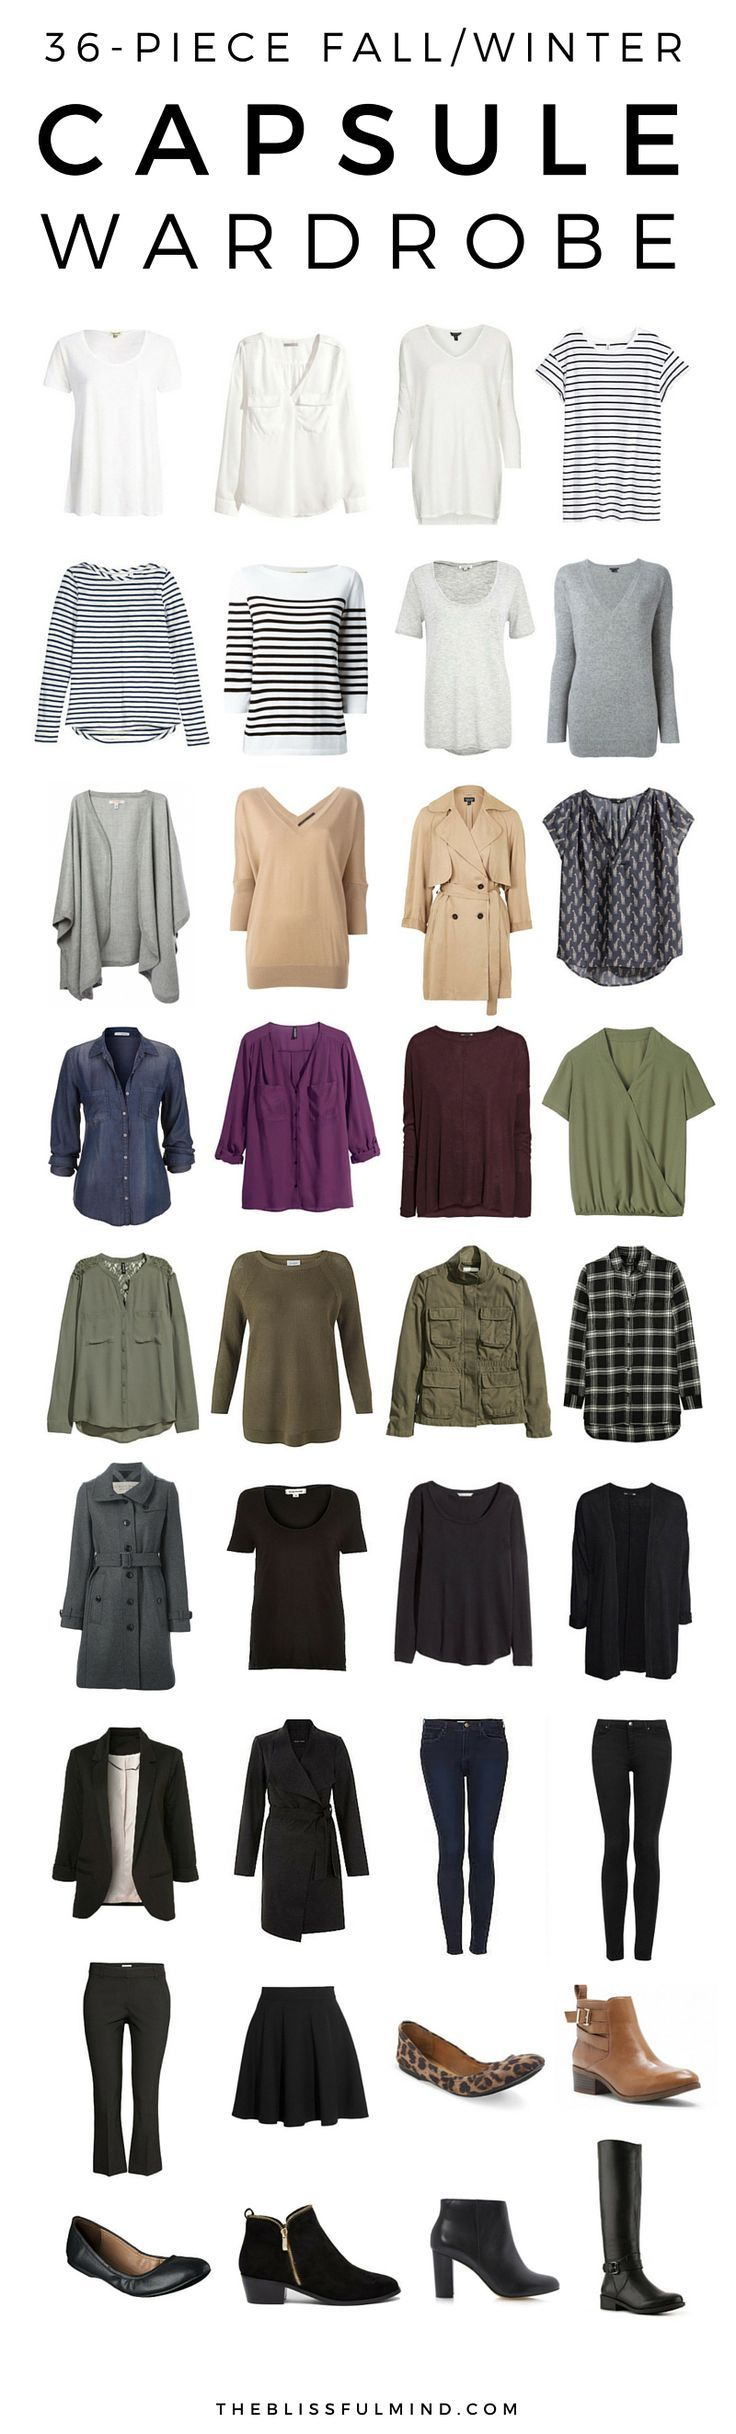 Looking to build capsule wardrobe. Basic pieces like these. Love.